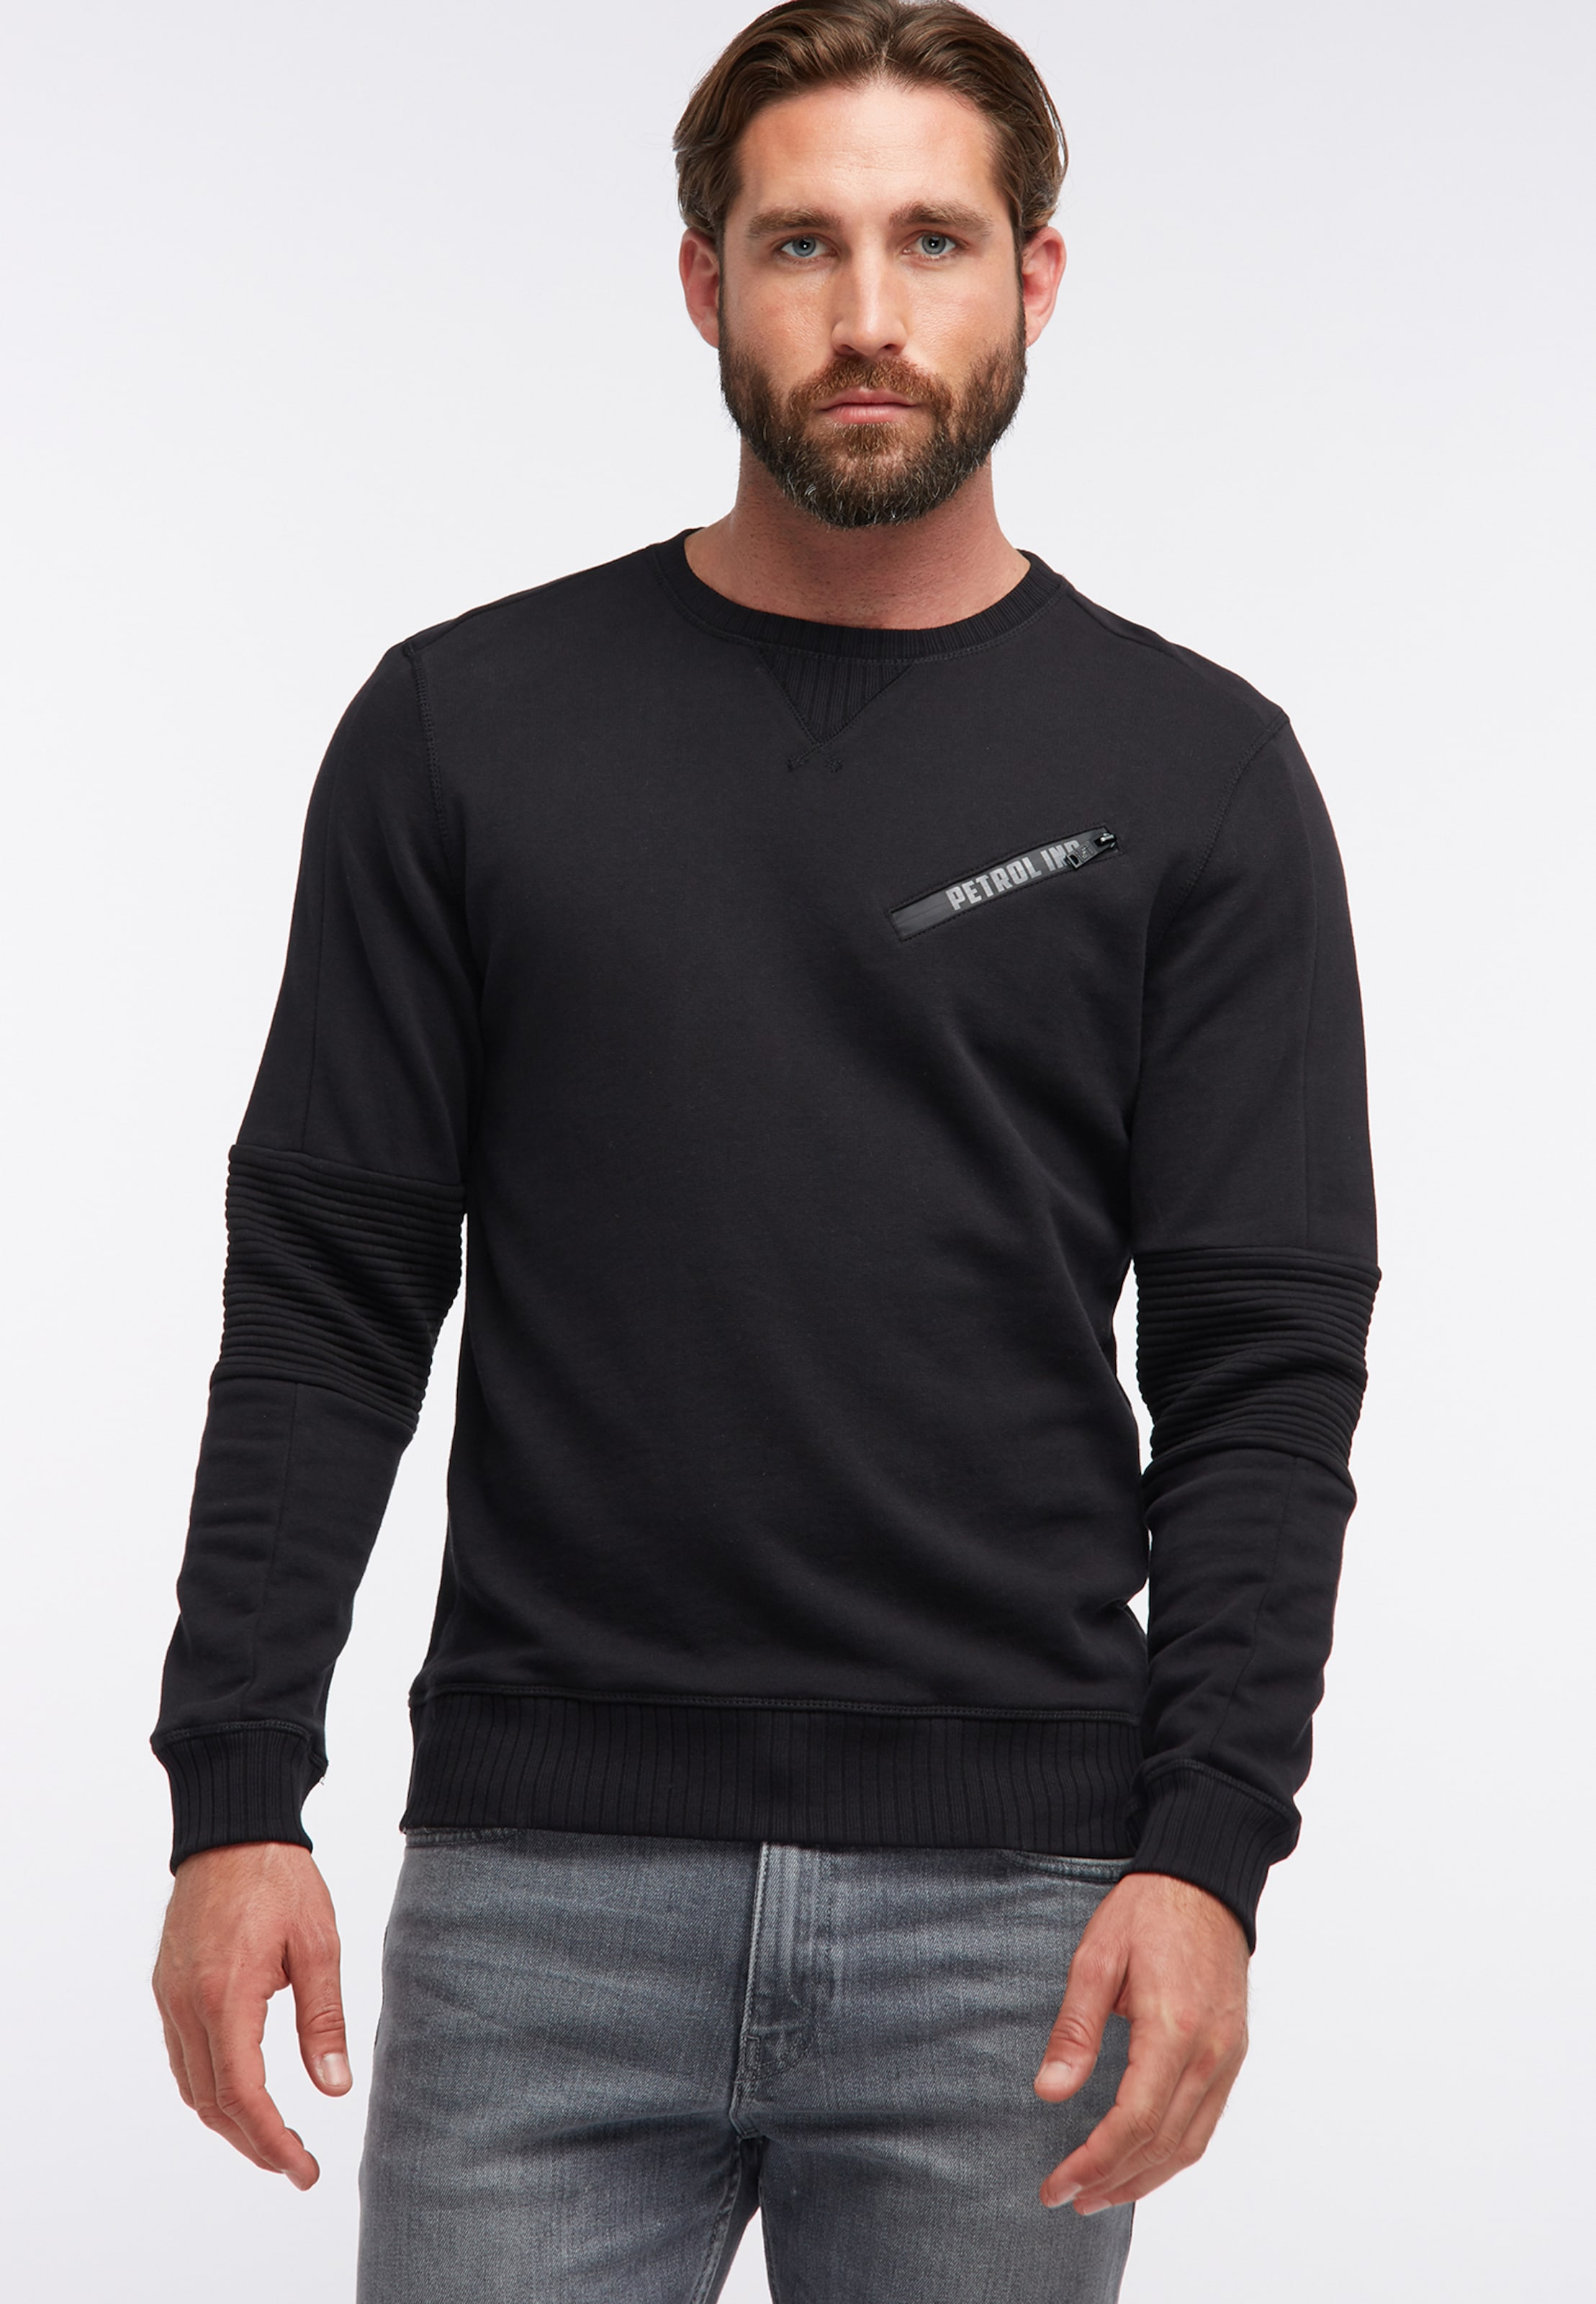 Petrol Sweat En shirt Industries Noir PZOuXkiT